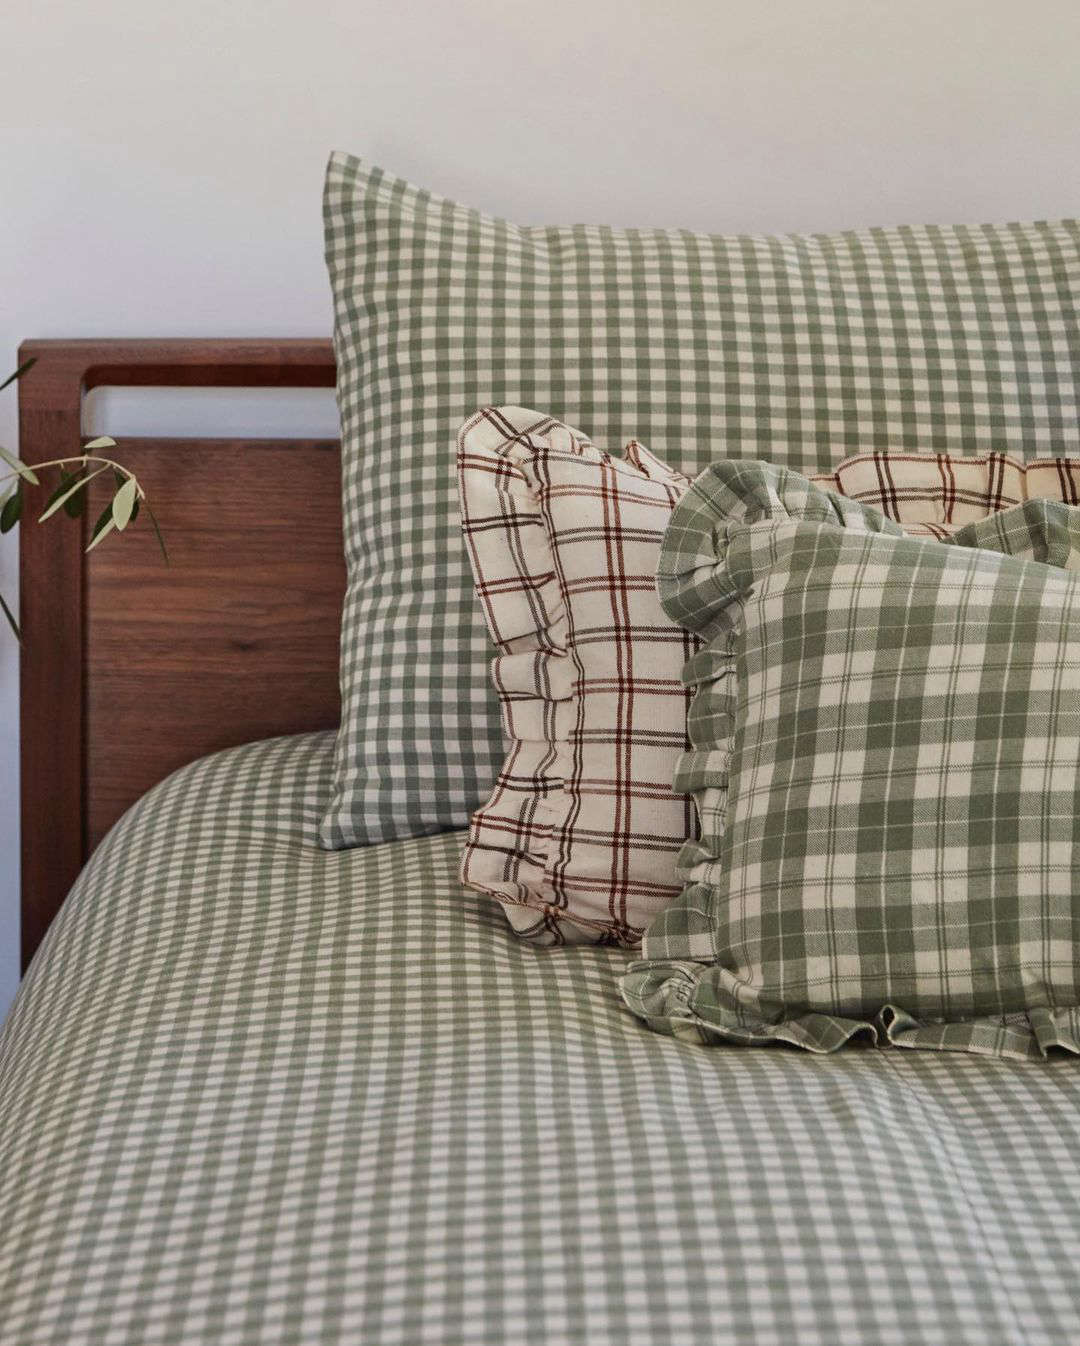 The Mini Gingham Duvet Cover in Sage Green, starting at $5.